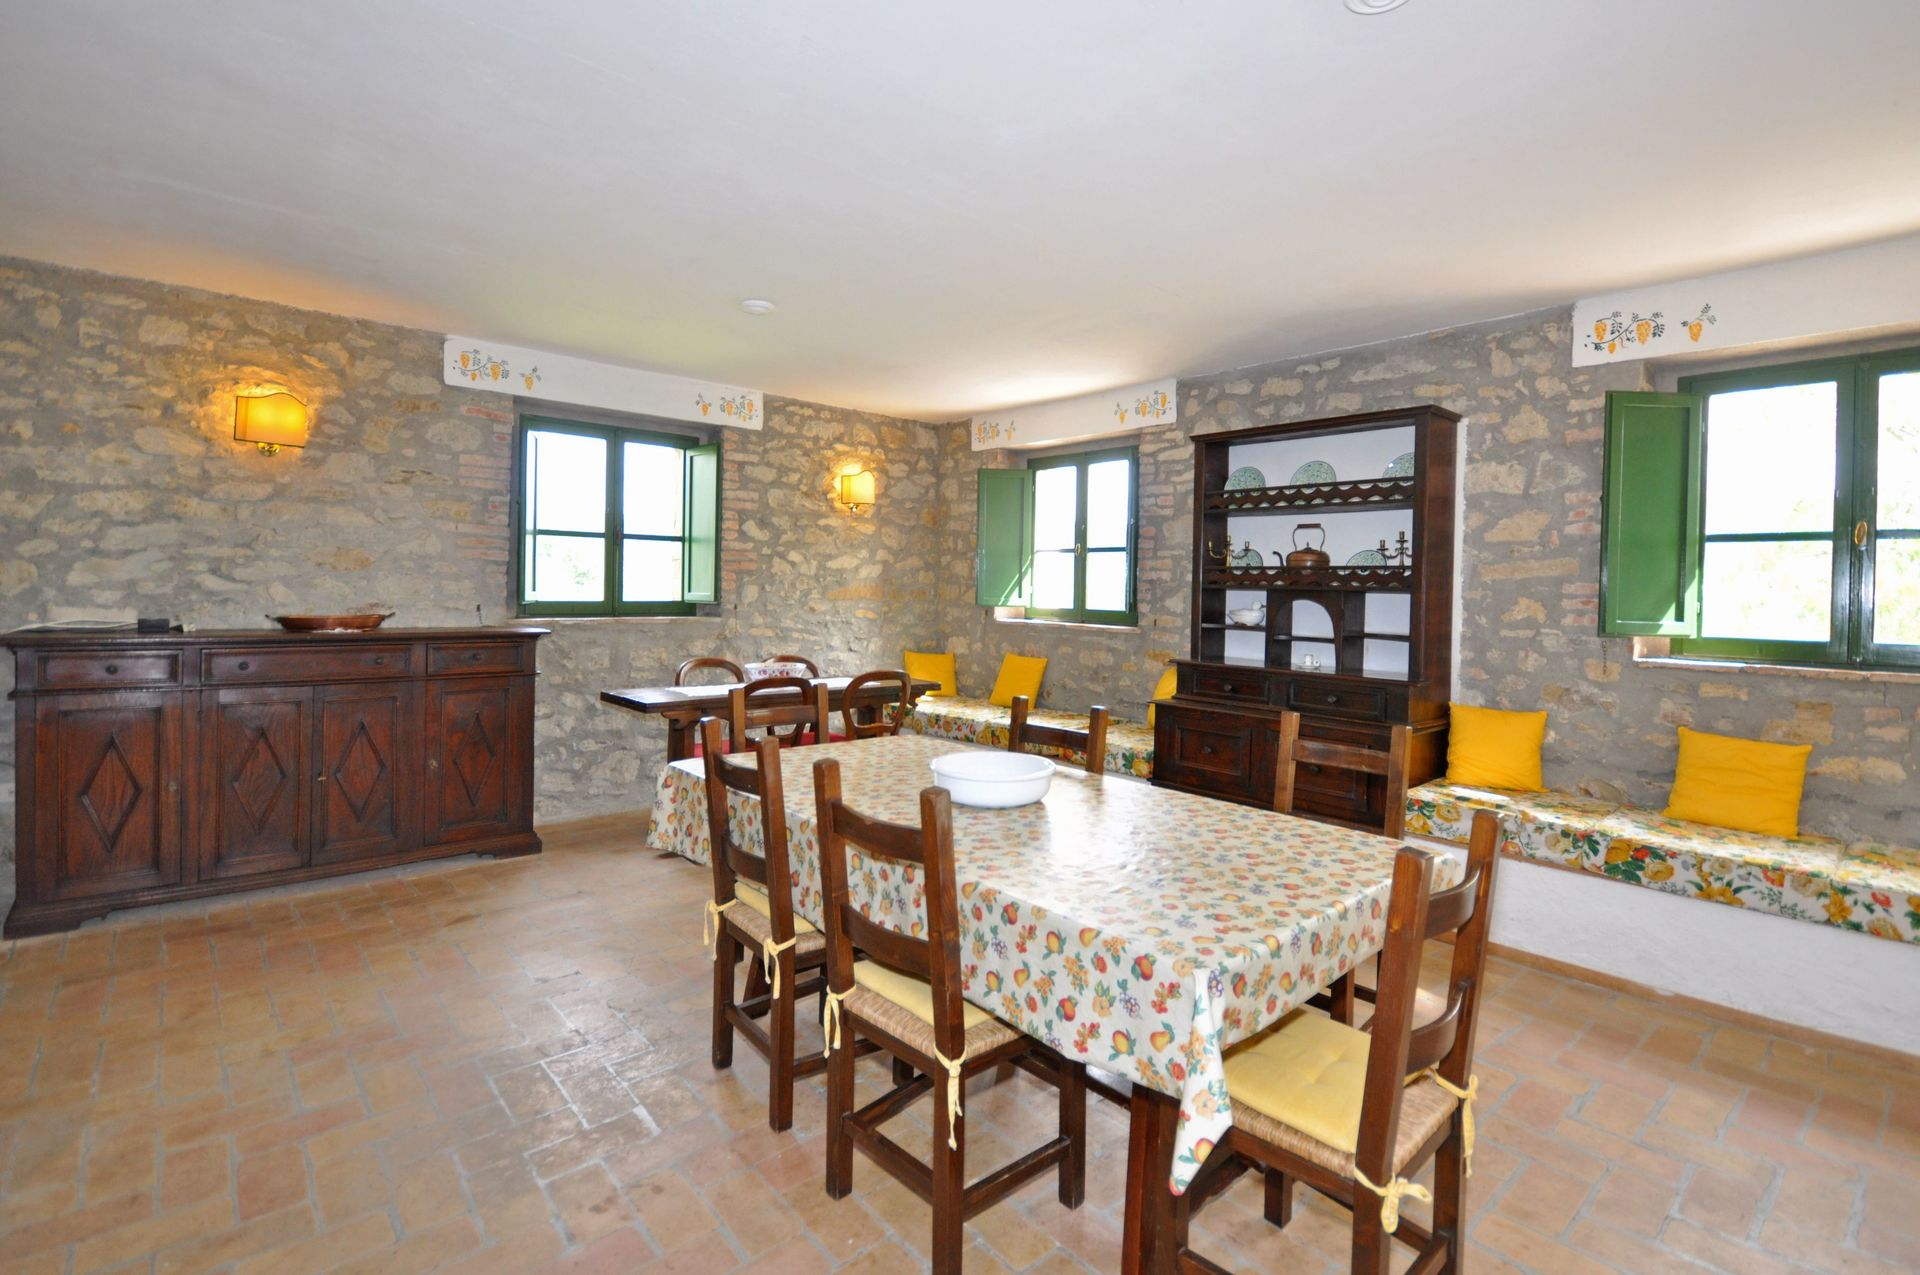 Budget apartments in Corciano buy